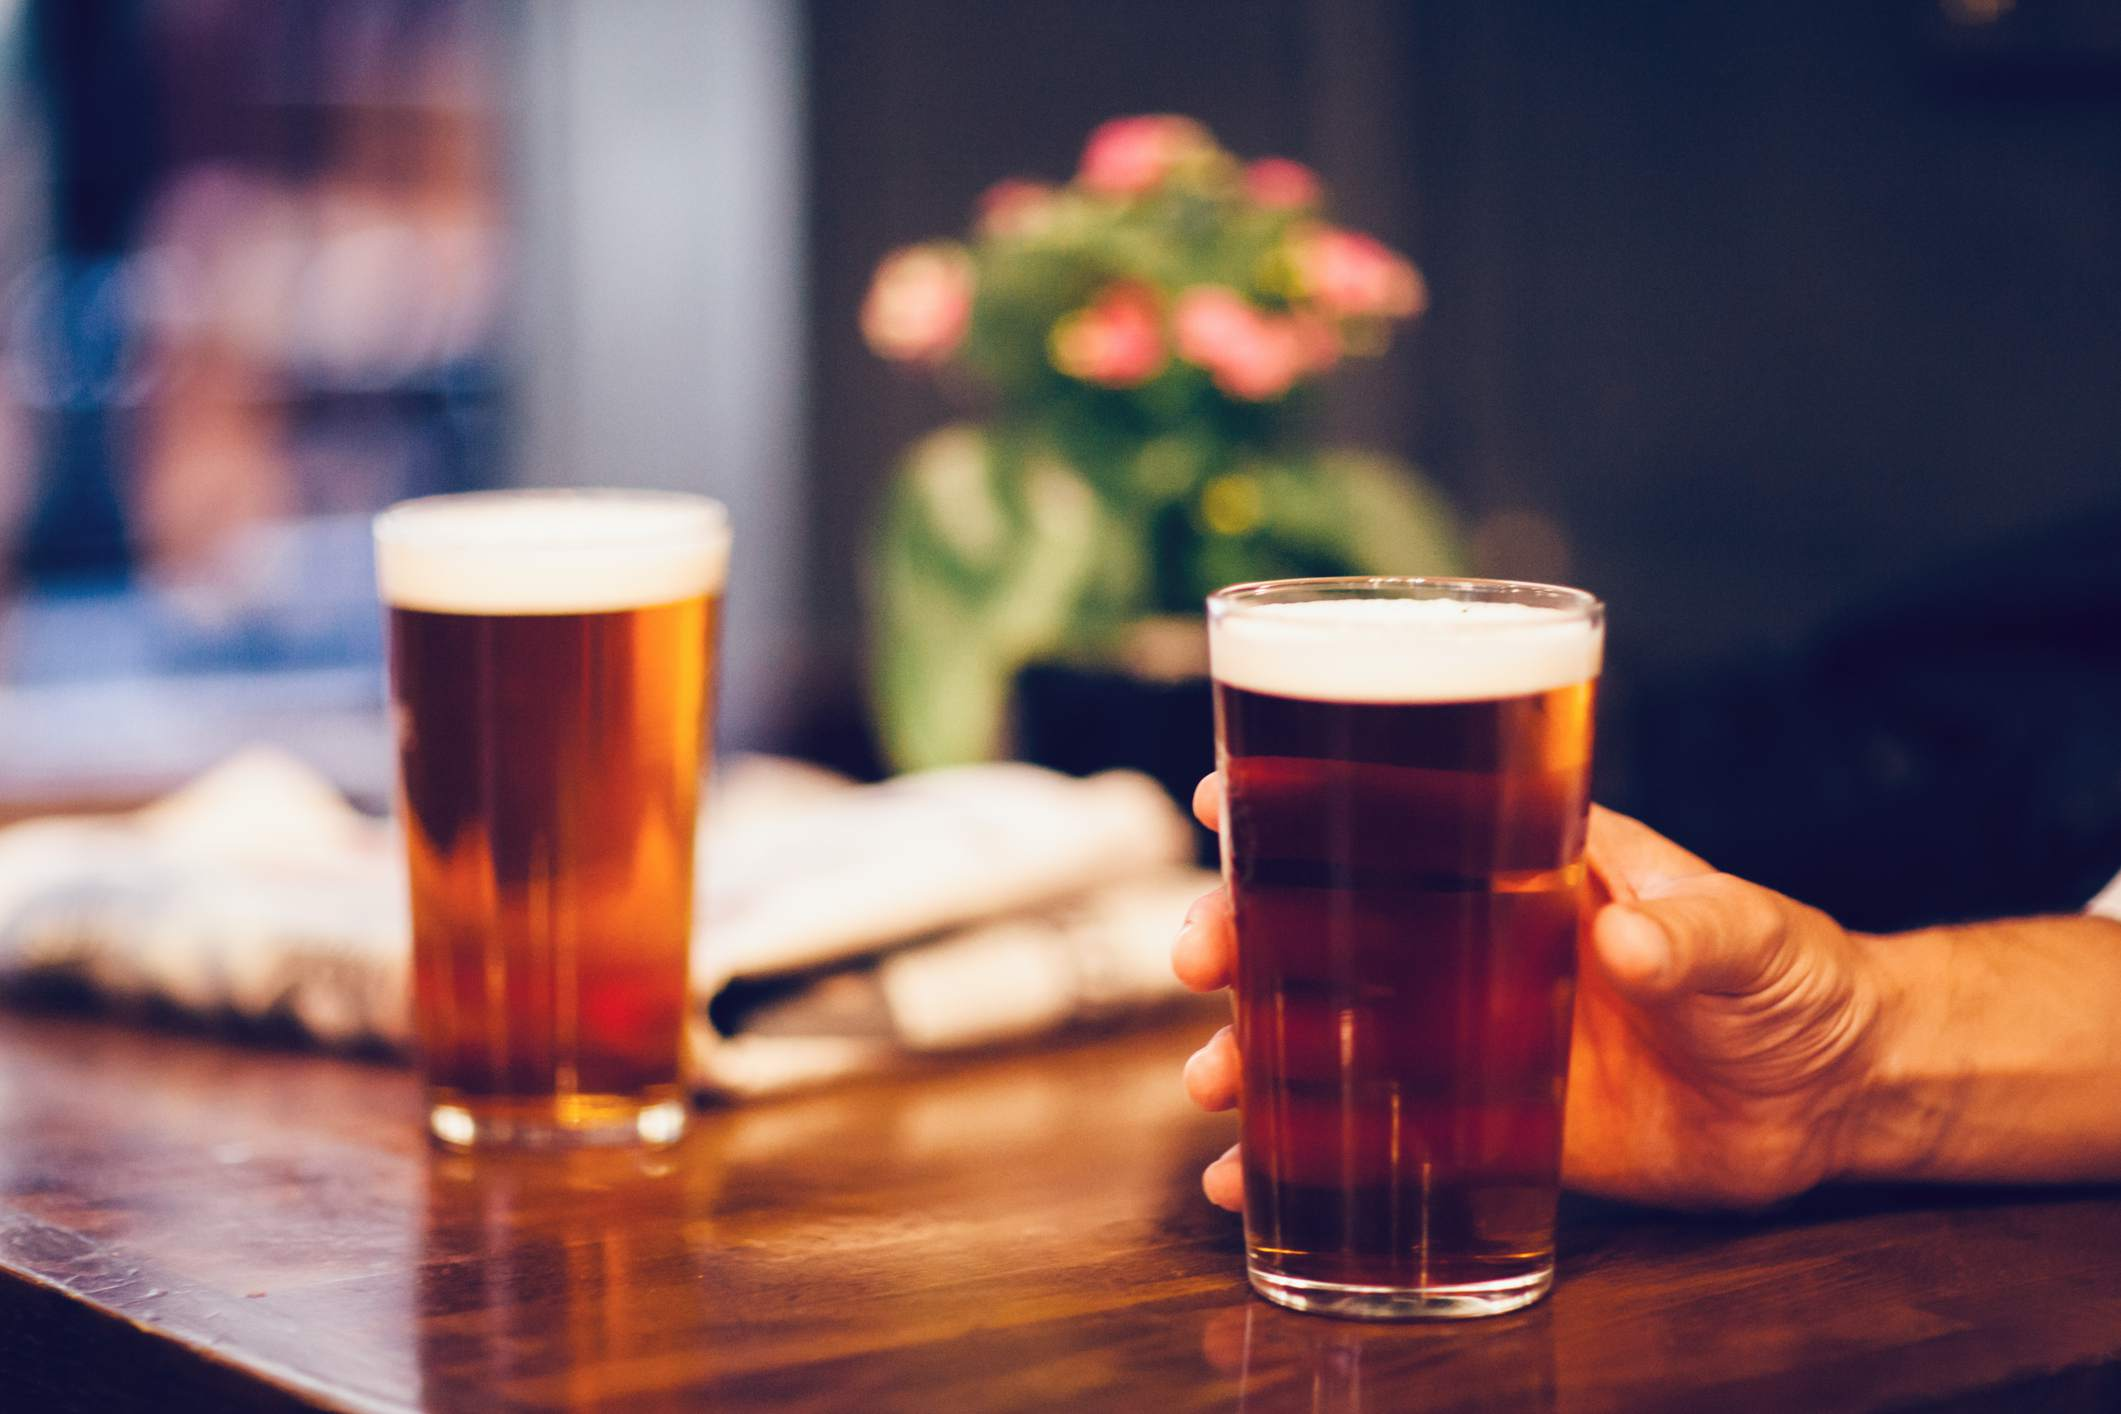 Two beers on a table